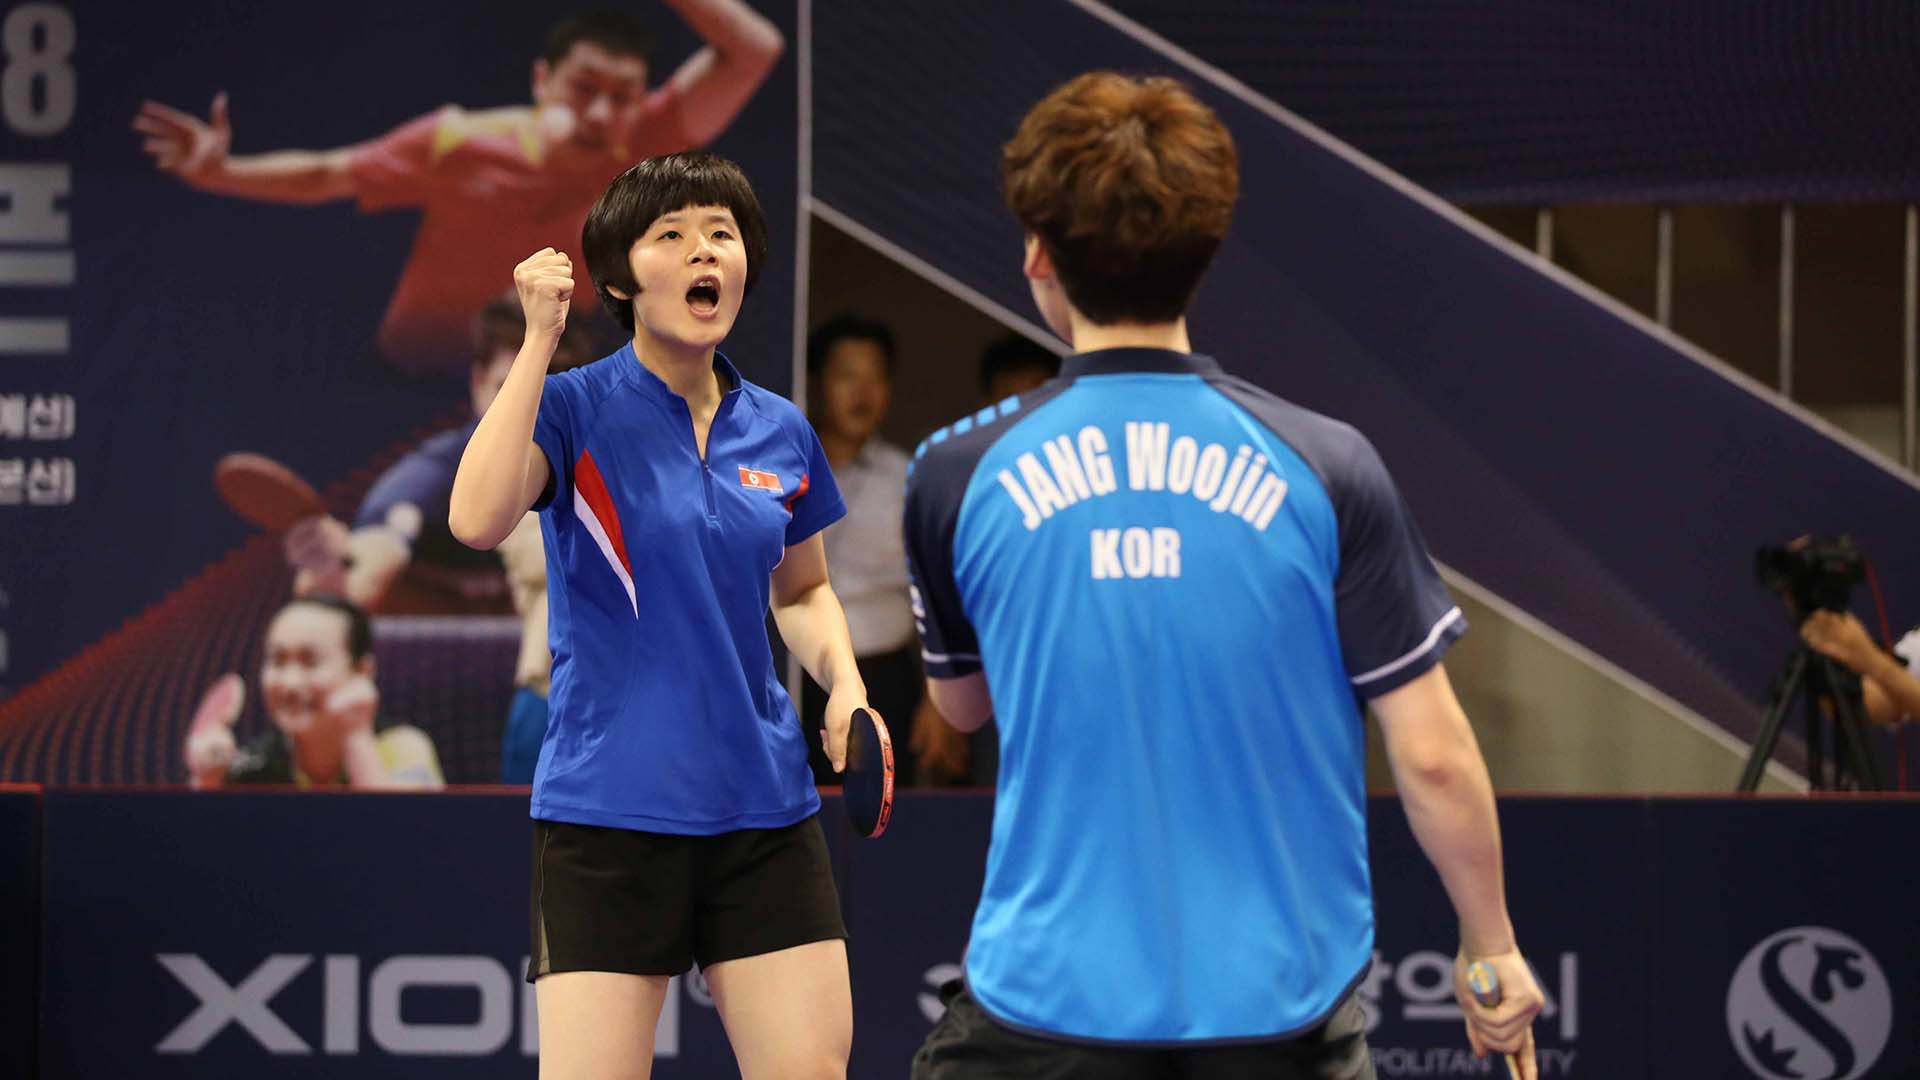 Unified mixed doubles team makes final at ITTF Korea Open